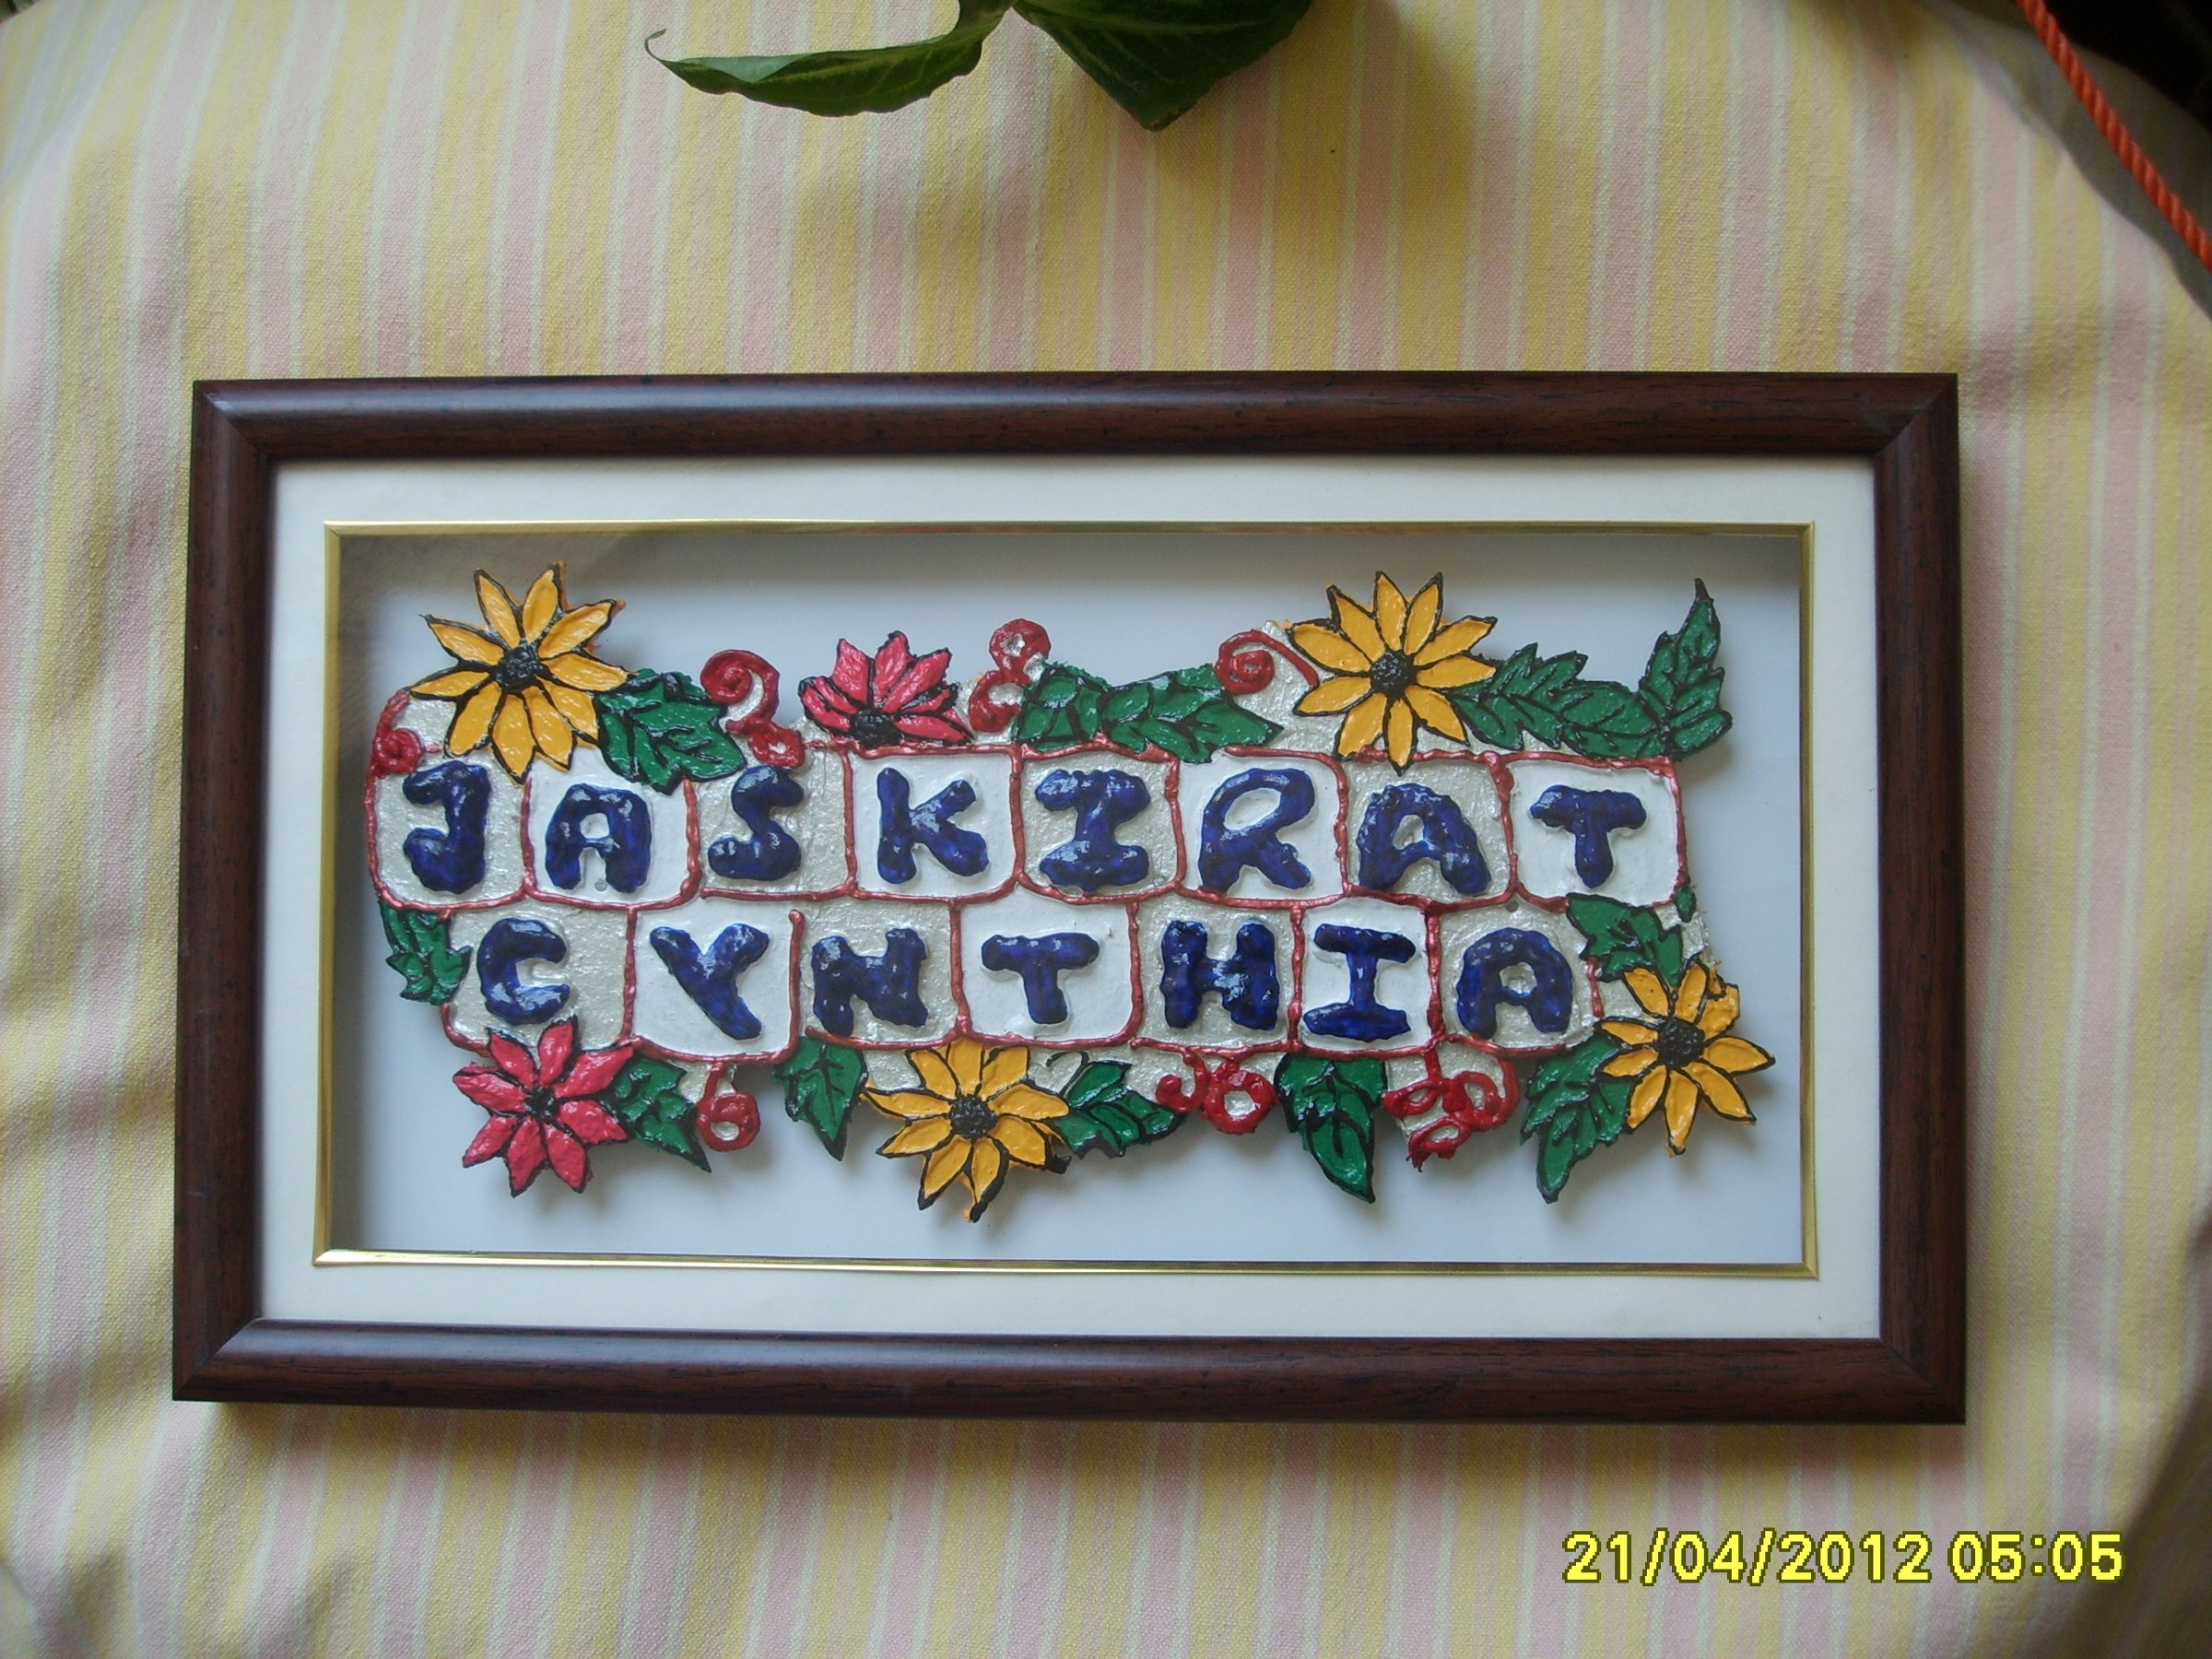 Decorative Name Plates For Home: Personalized Name Plate-Handmade -Online Shopping